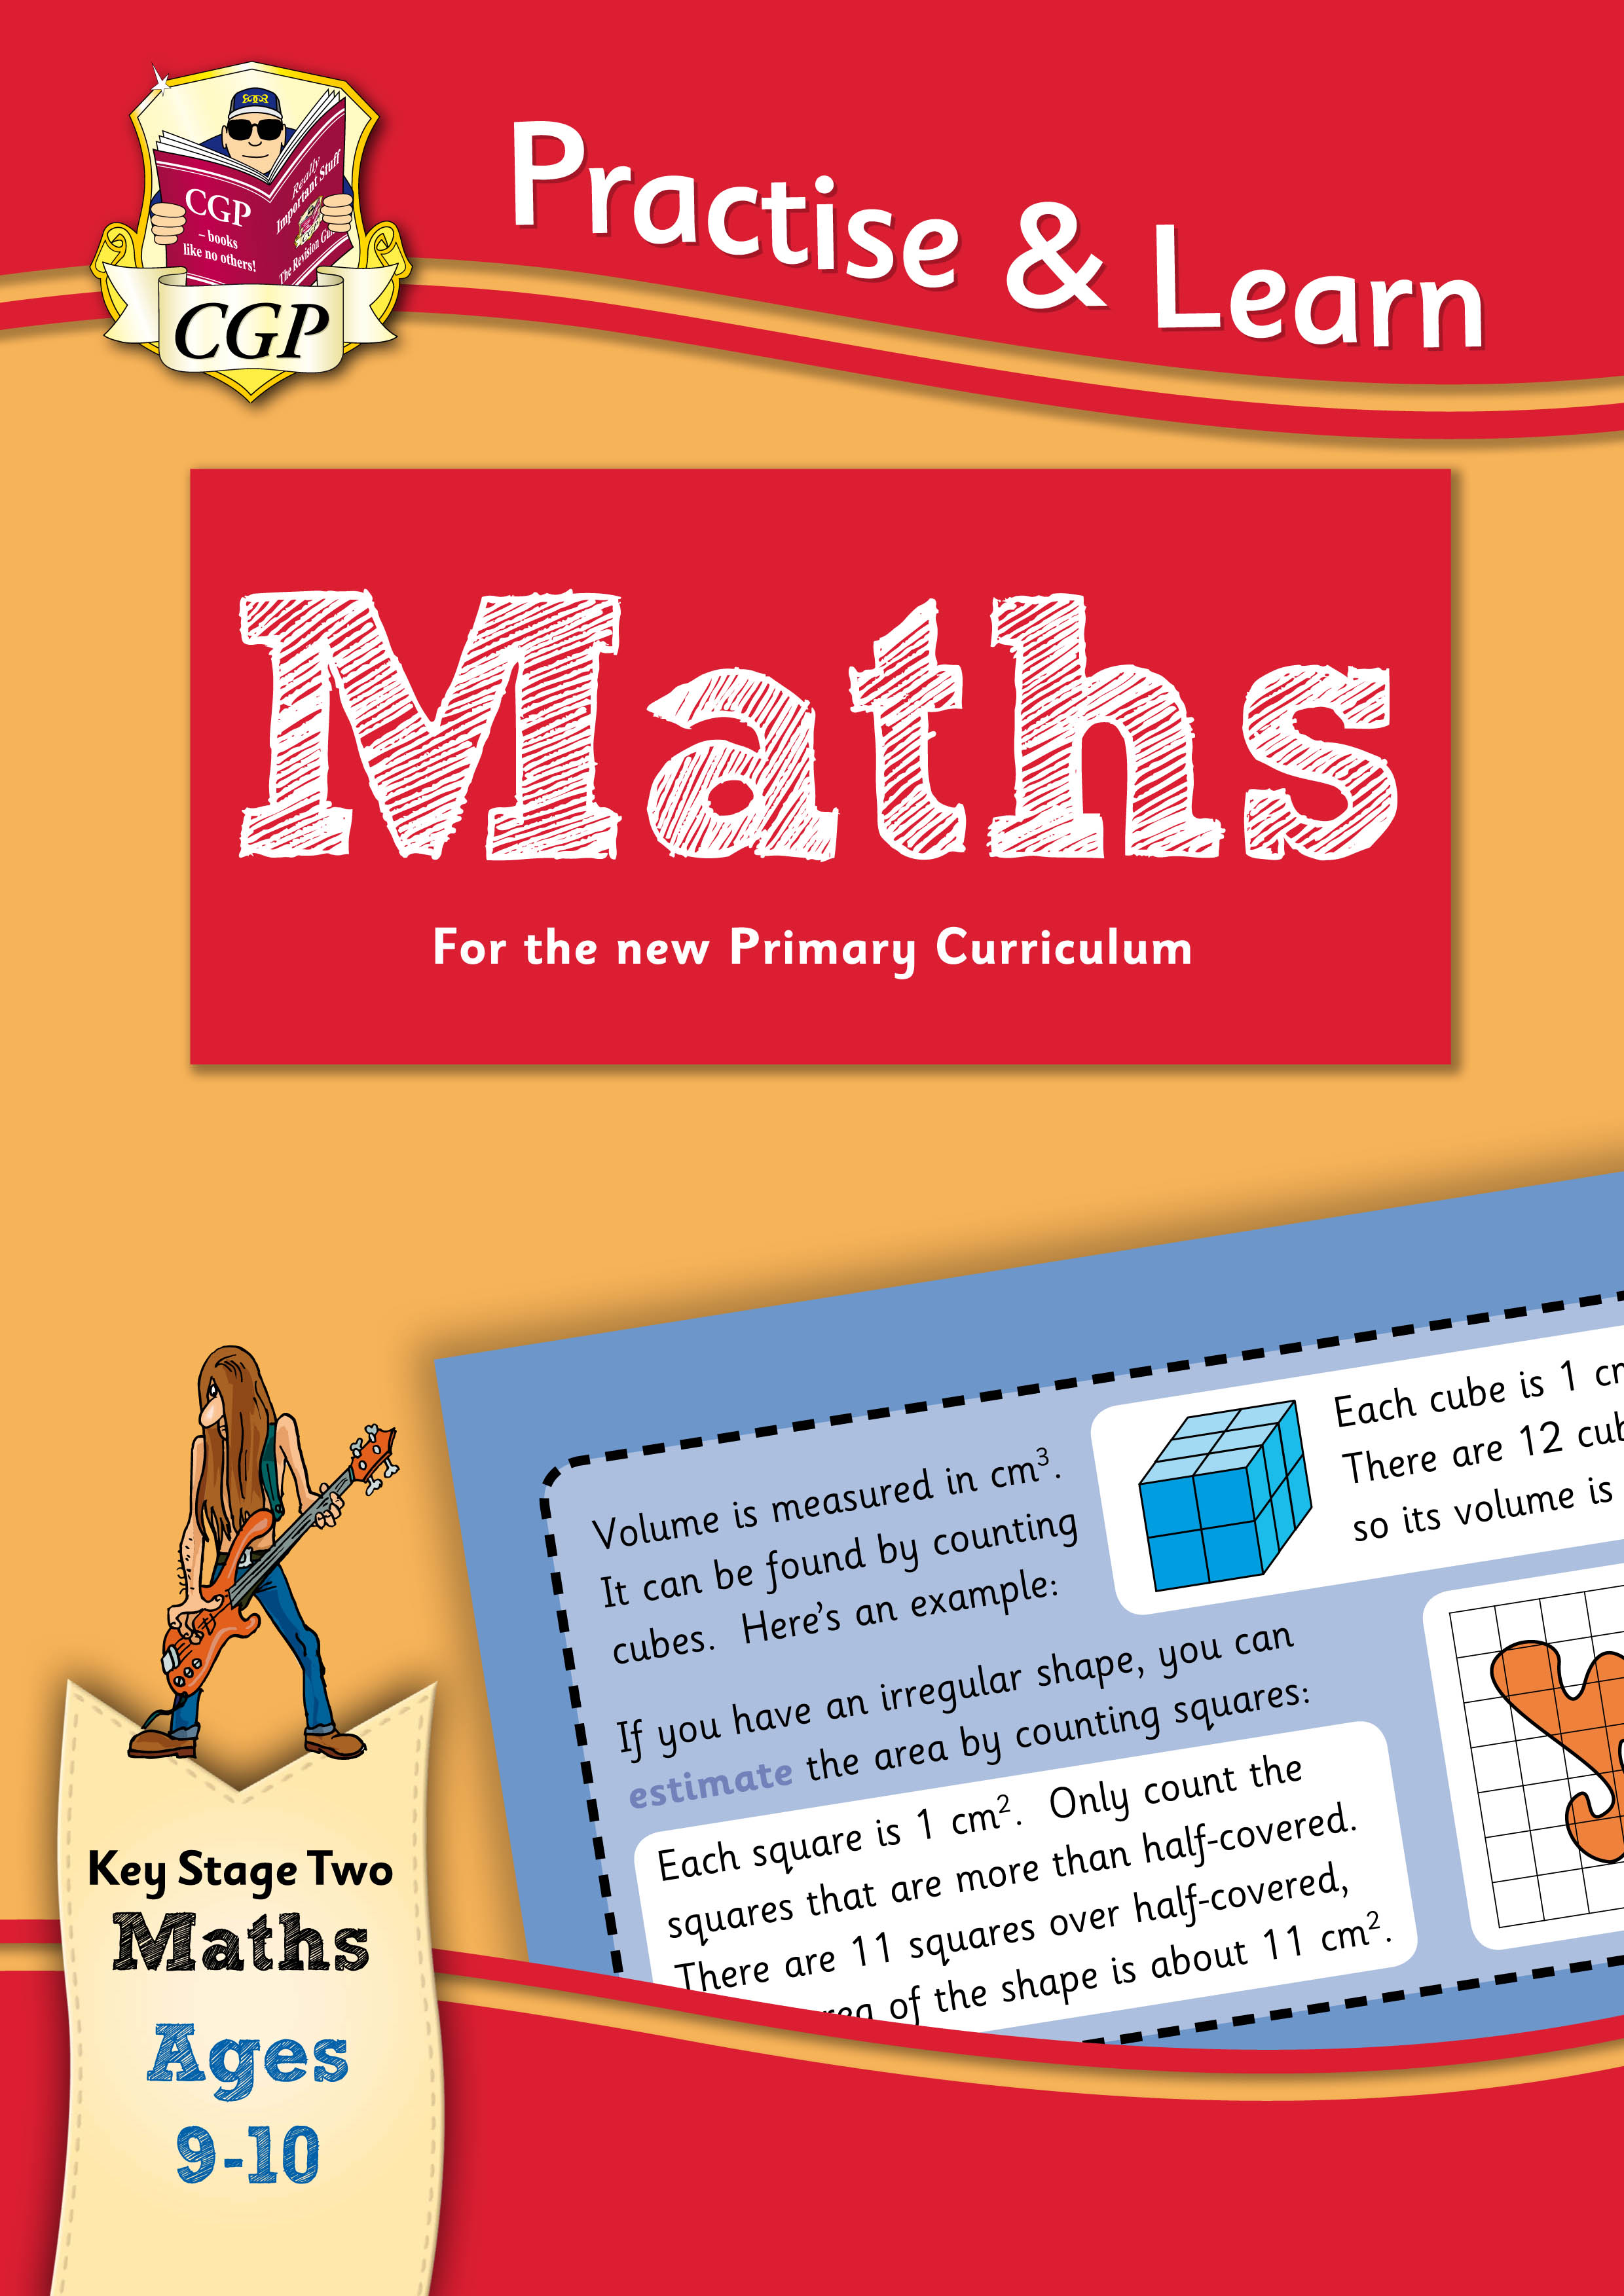 MP5Q22DK - New Curriculum Practise & Learn: Maths for Ages 9-10